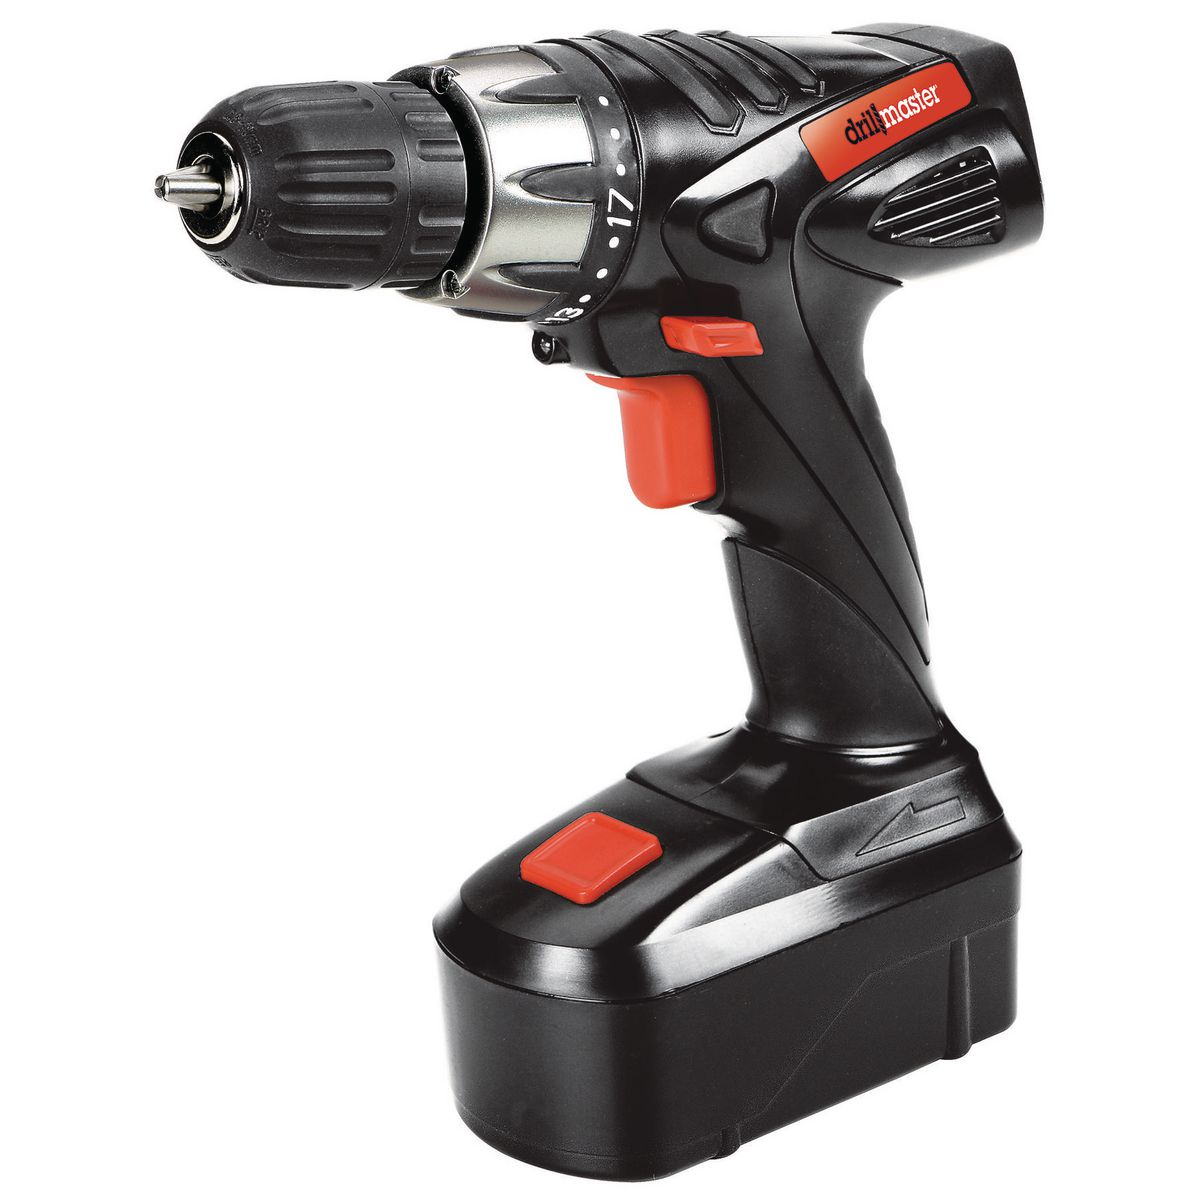 18 Volt 3/8 in. Cordless Drill/Driver Kit With Keyless ...